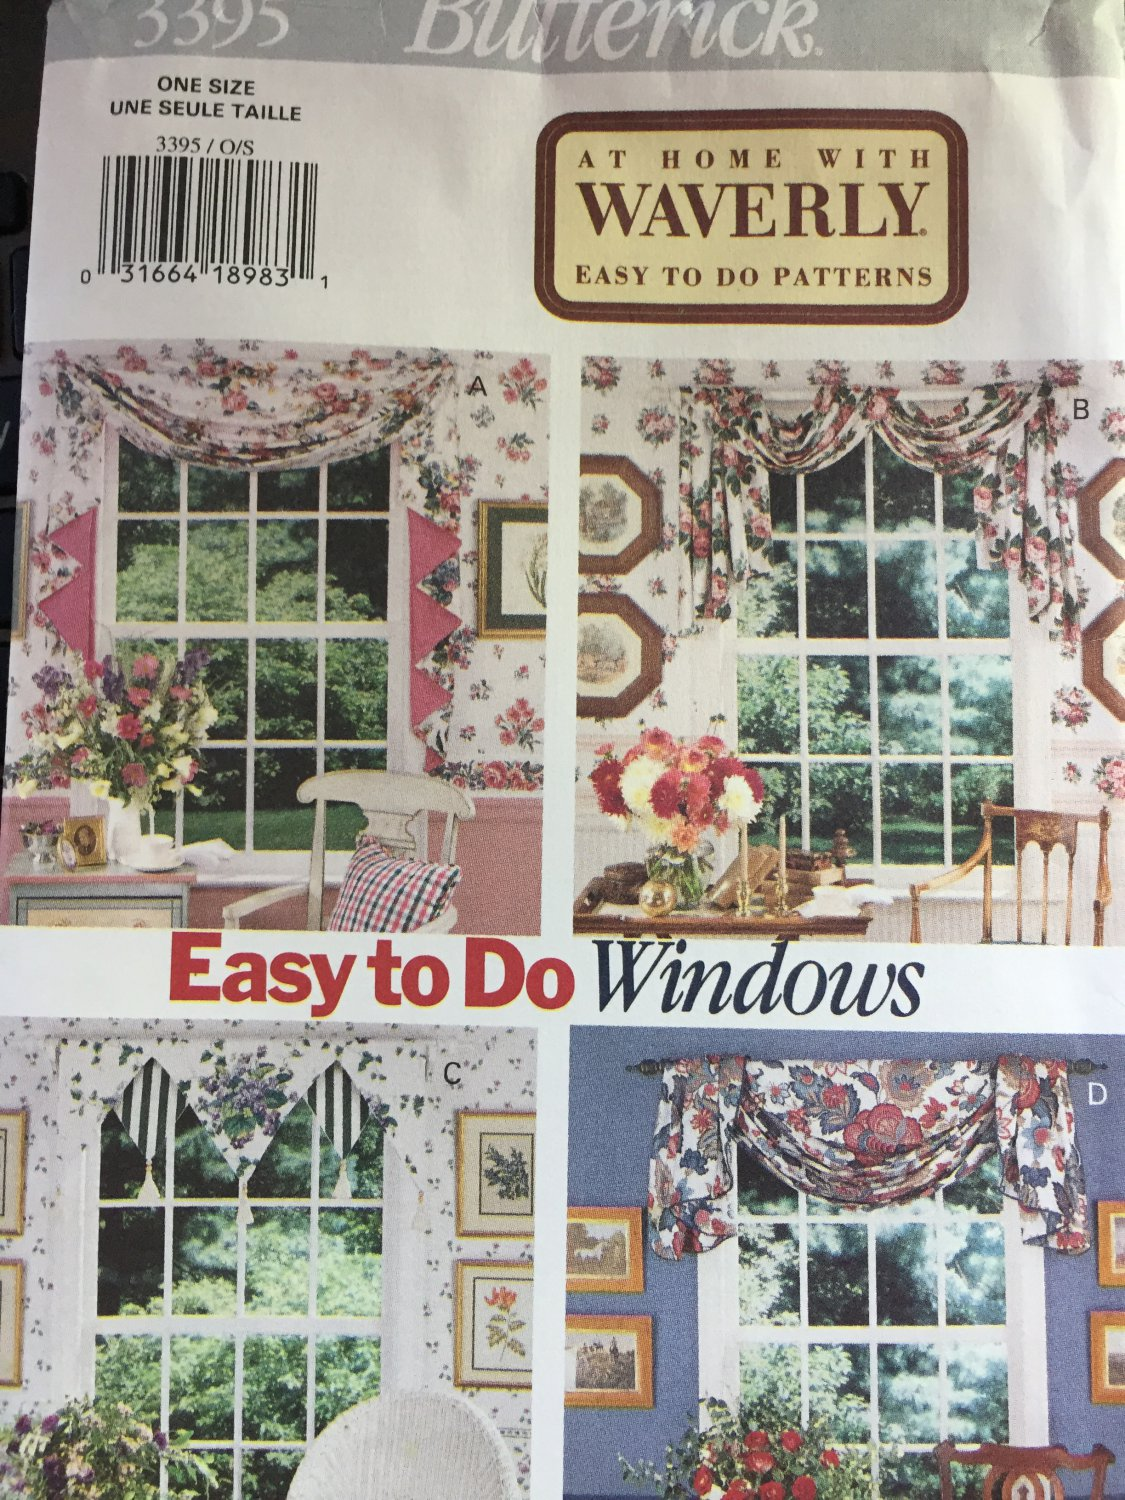 Valances Window treatments Sewing pattern Butterick 3395 Window Scarves